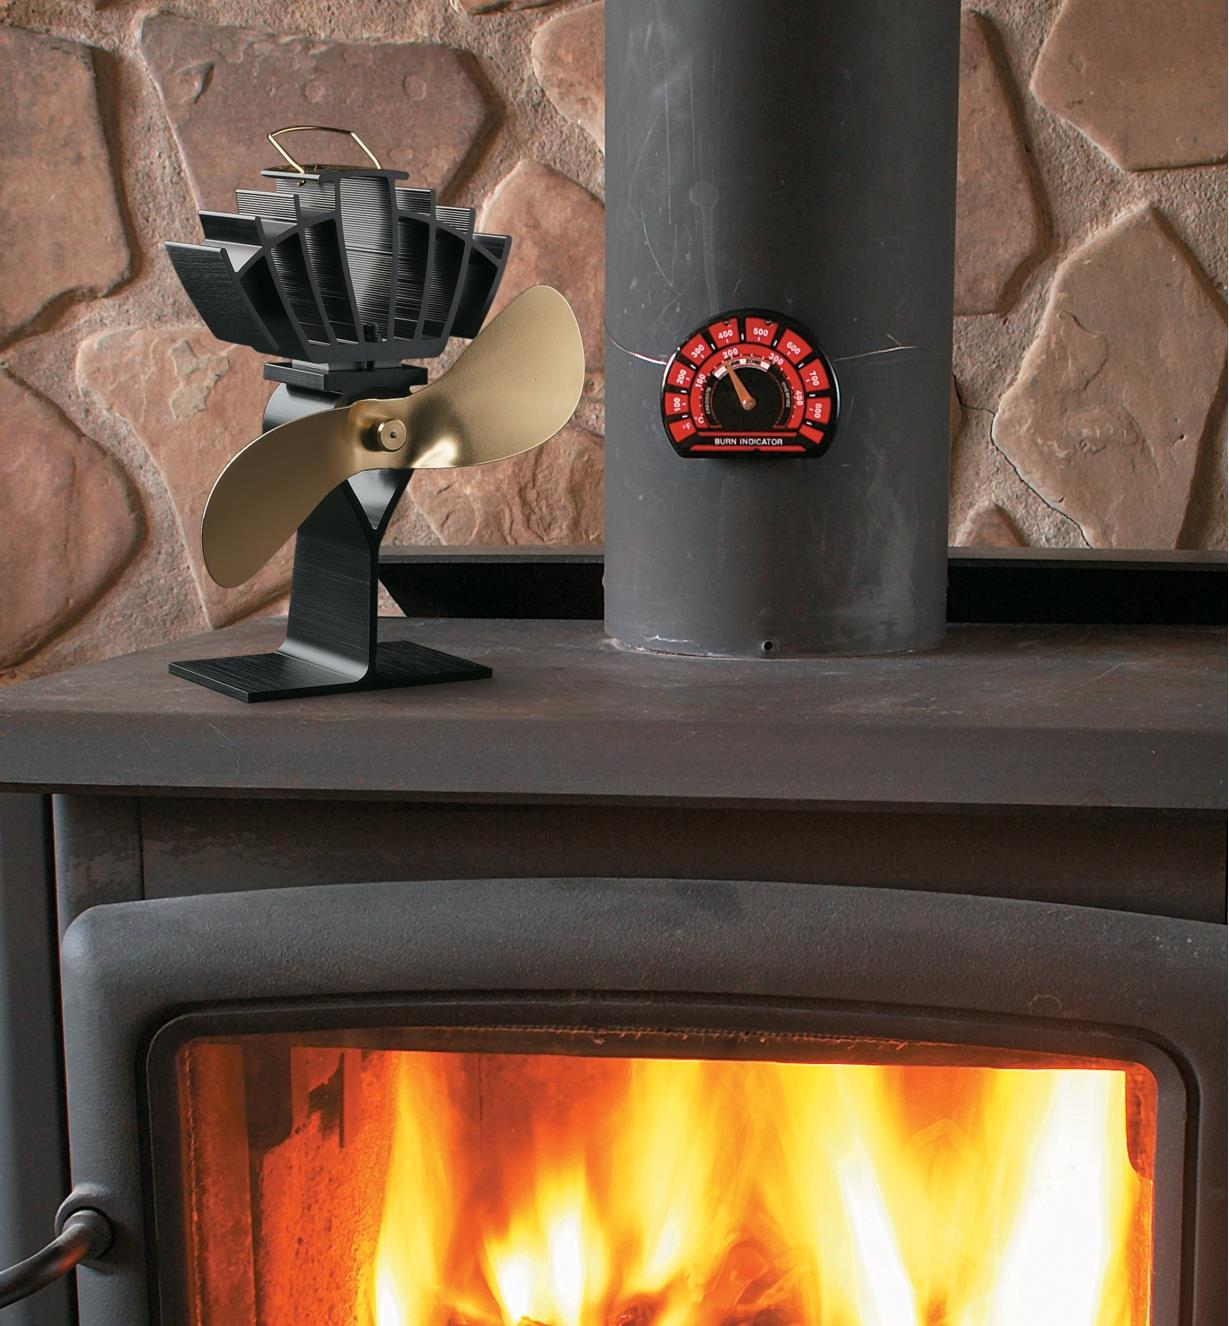 Ecofan UltrAir on a wood stove, distributing the heat of the fire